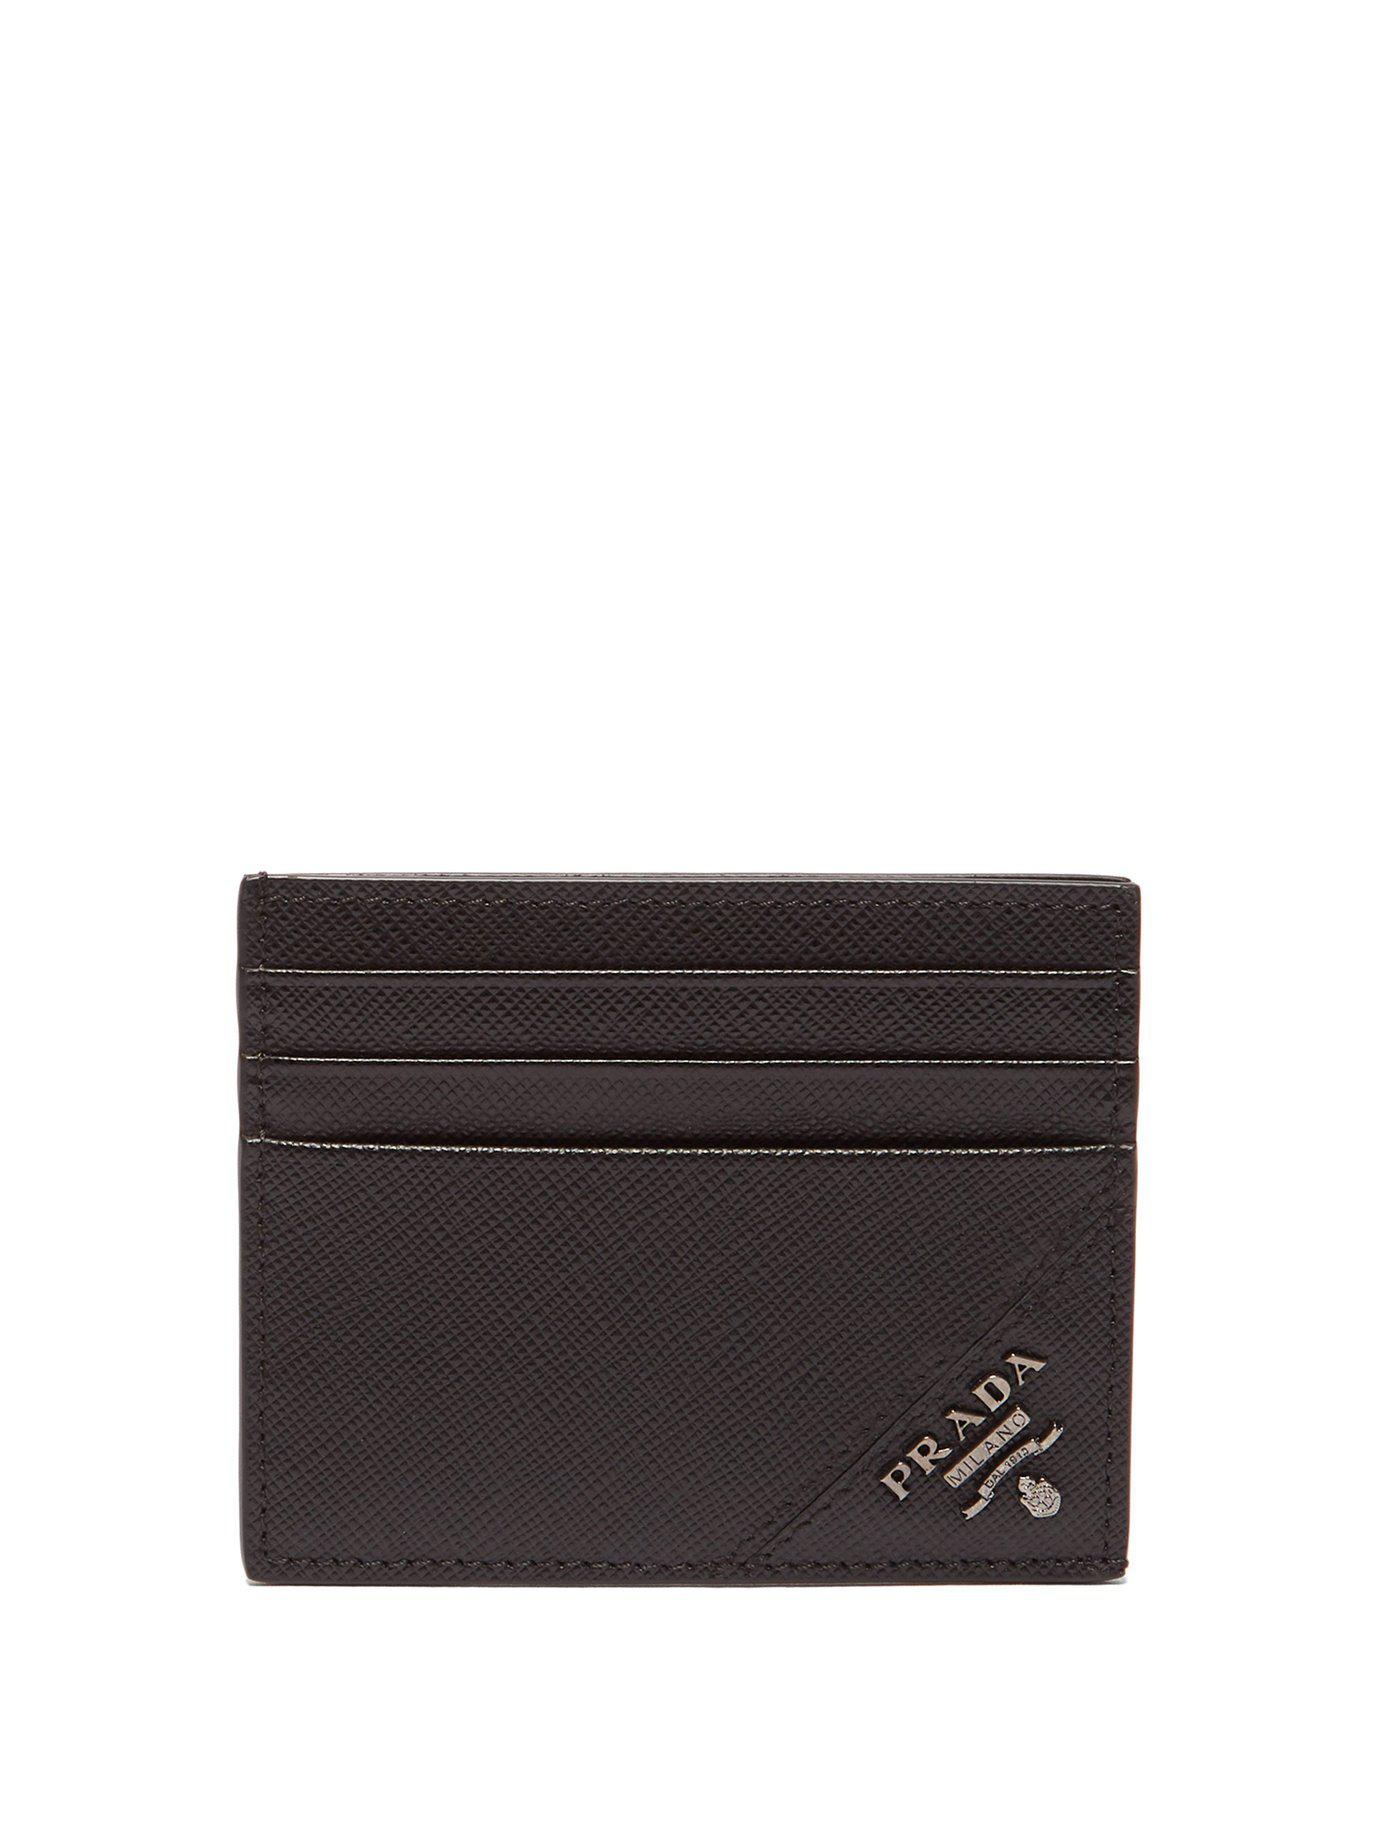 5f2d3ecfb47e Prada - Black Saffiano Leather Metallic Embellished Cardholder for Men -  Lyst. View fullscreen